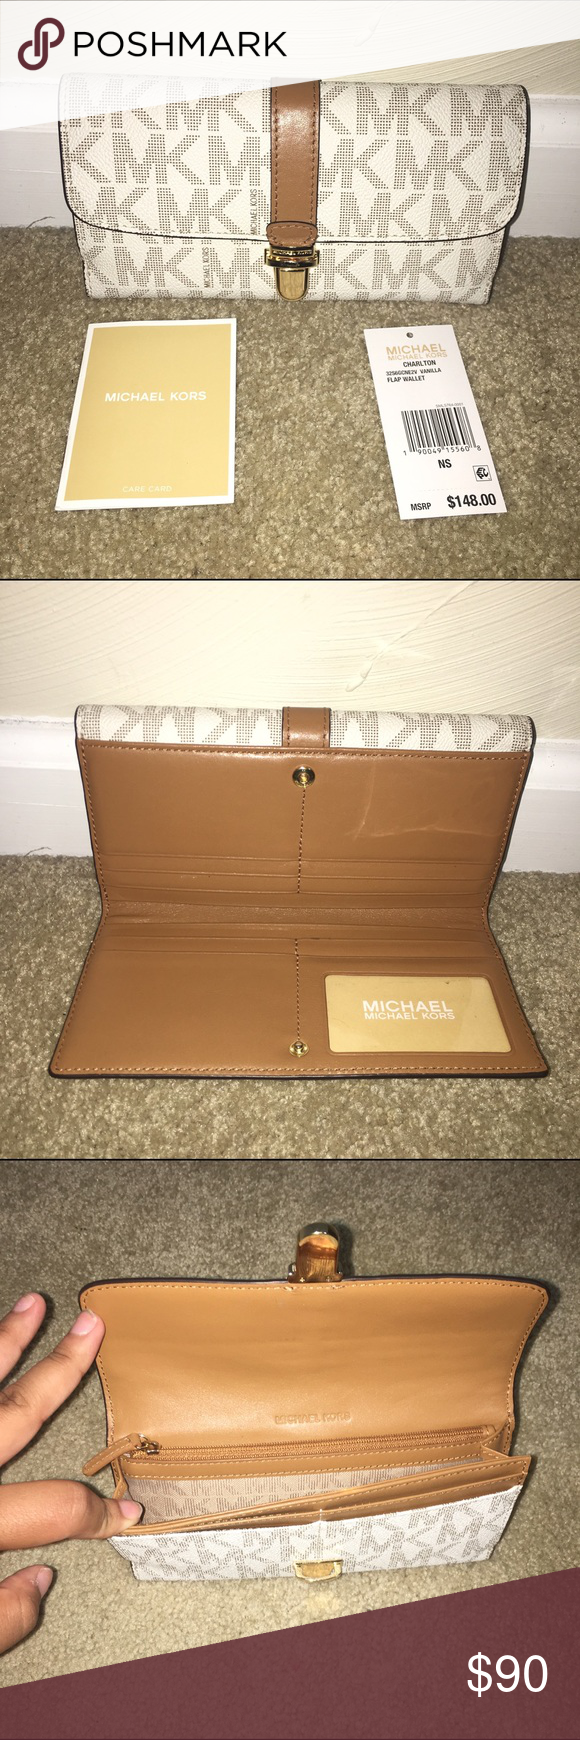 aa42bf08cae622 Michael Kors Charlton Flap Wallet in Vanilla Michael Kors Charlton Flap  Wallet in Vanilla with Gold